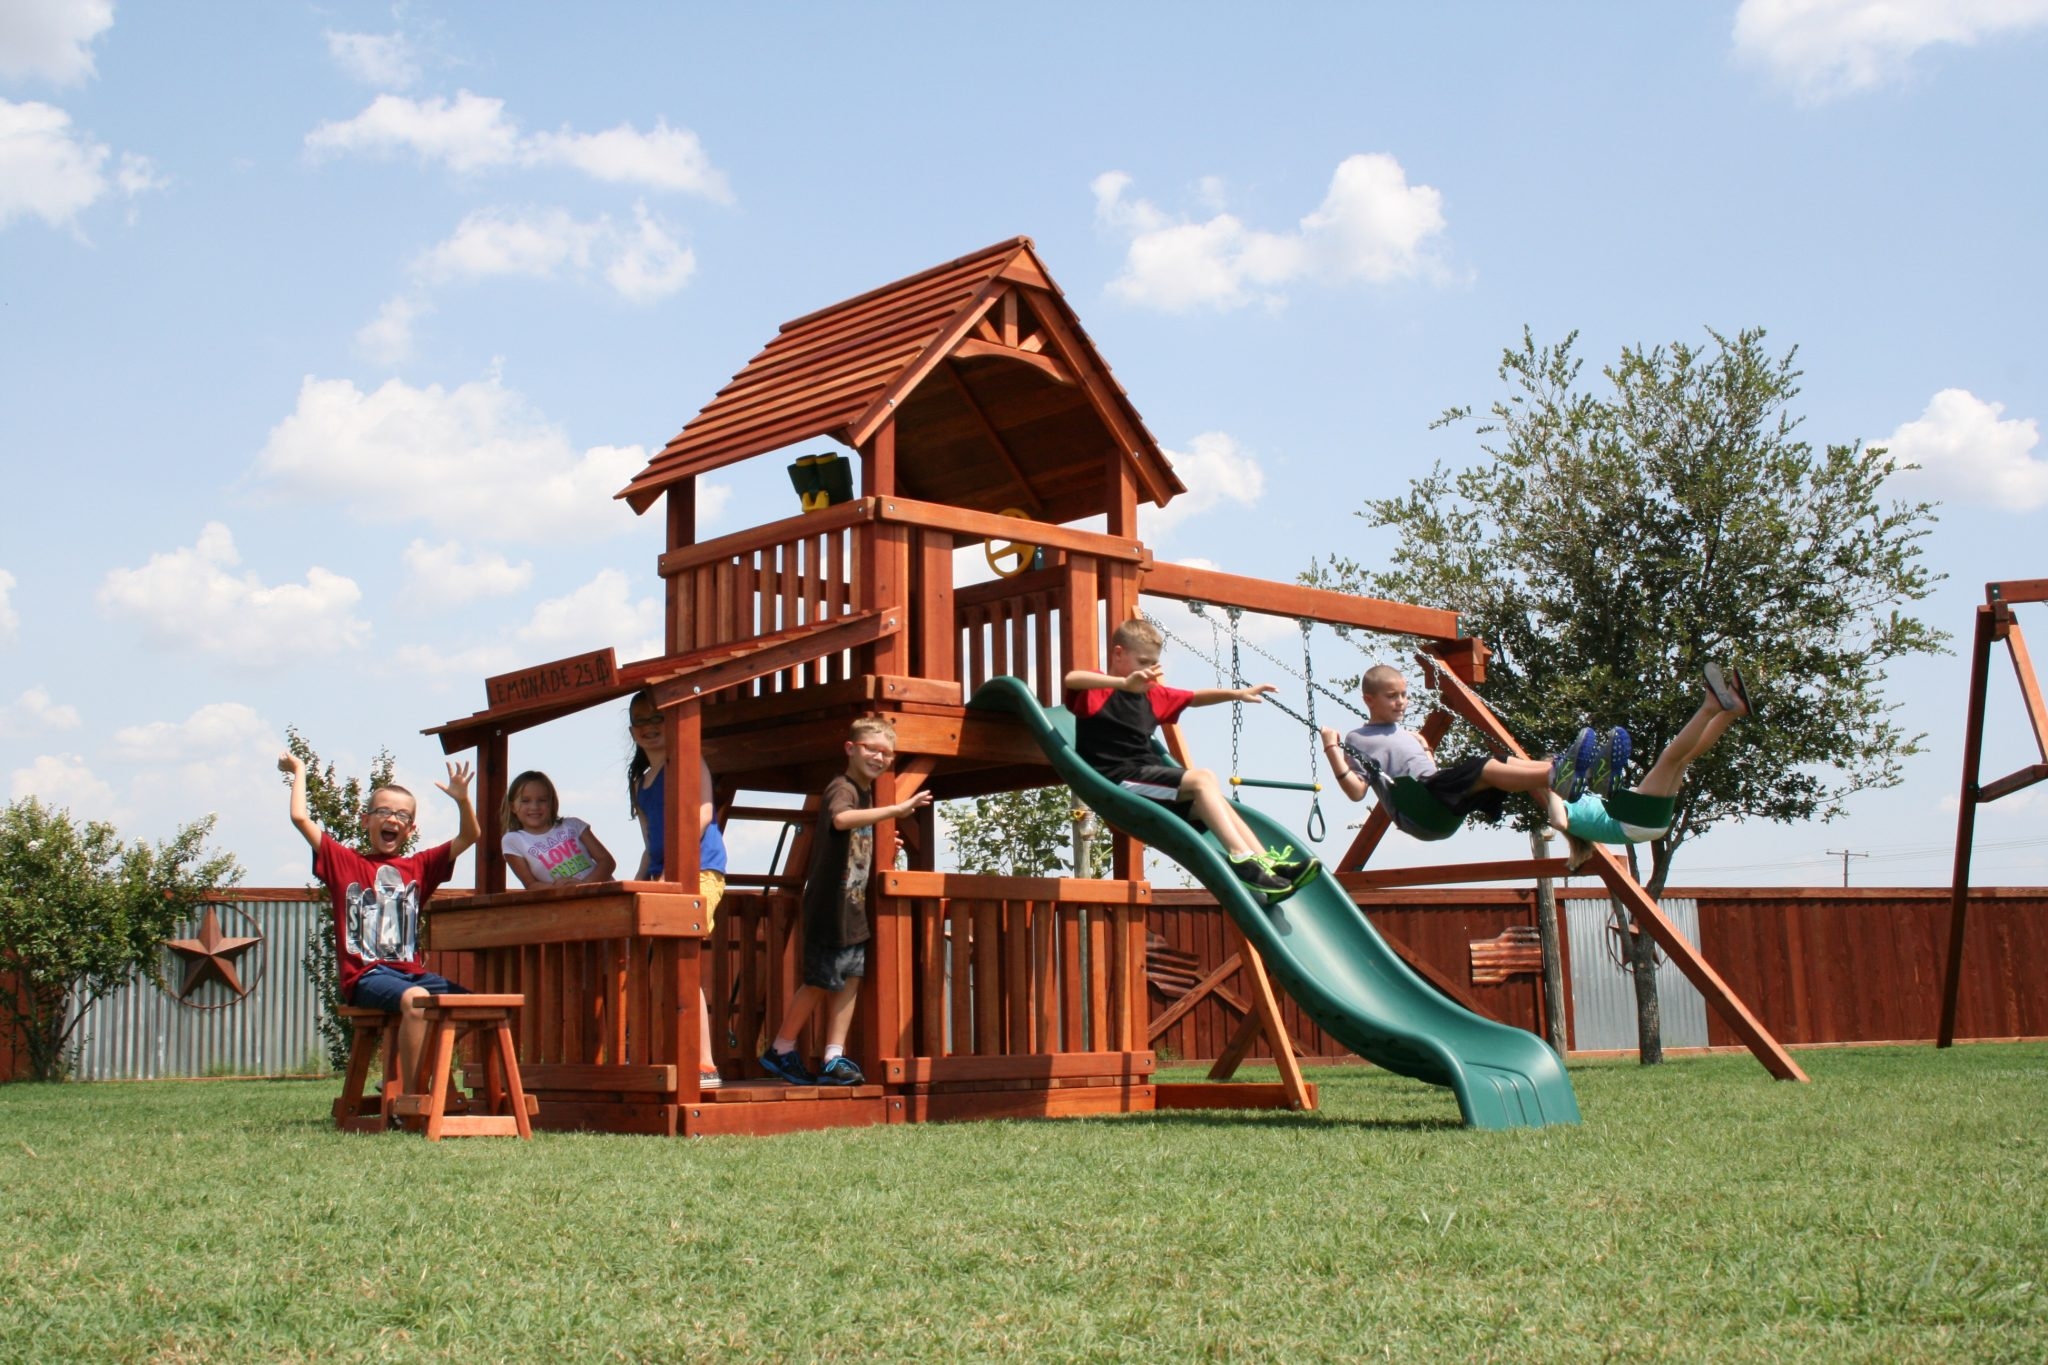 What Are The Benefits of Installing a Backyard Playground?